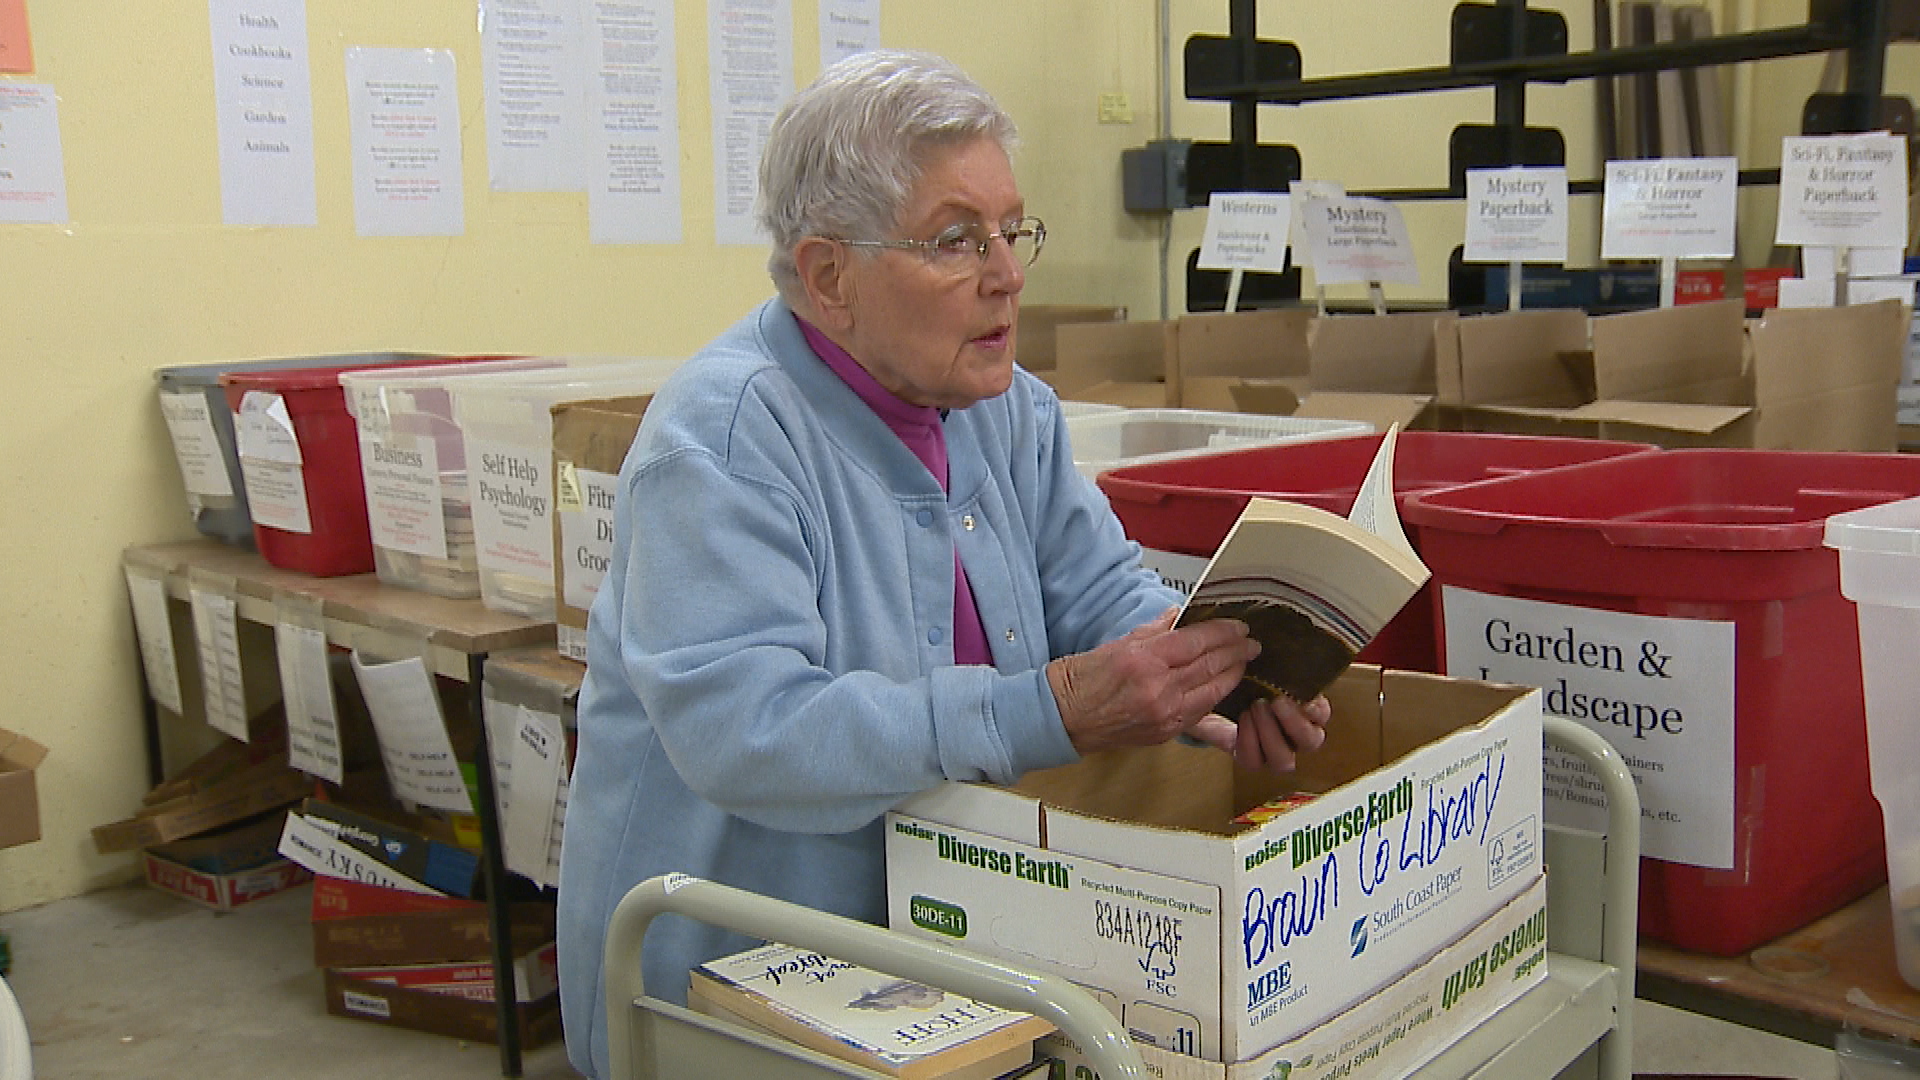 Anita Powers sifting through books to sort ahead of the twice-yearly book sale. (Courtesy WLUK)<p></p>